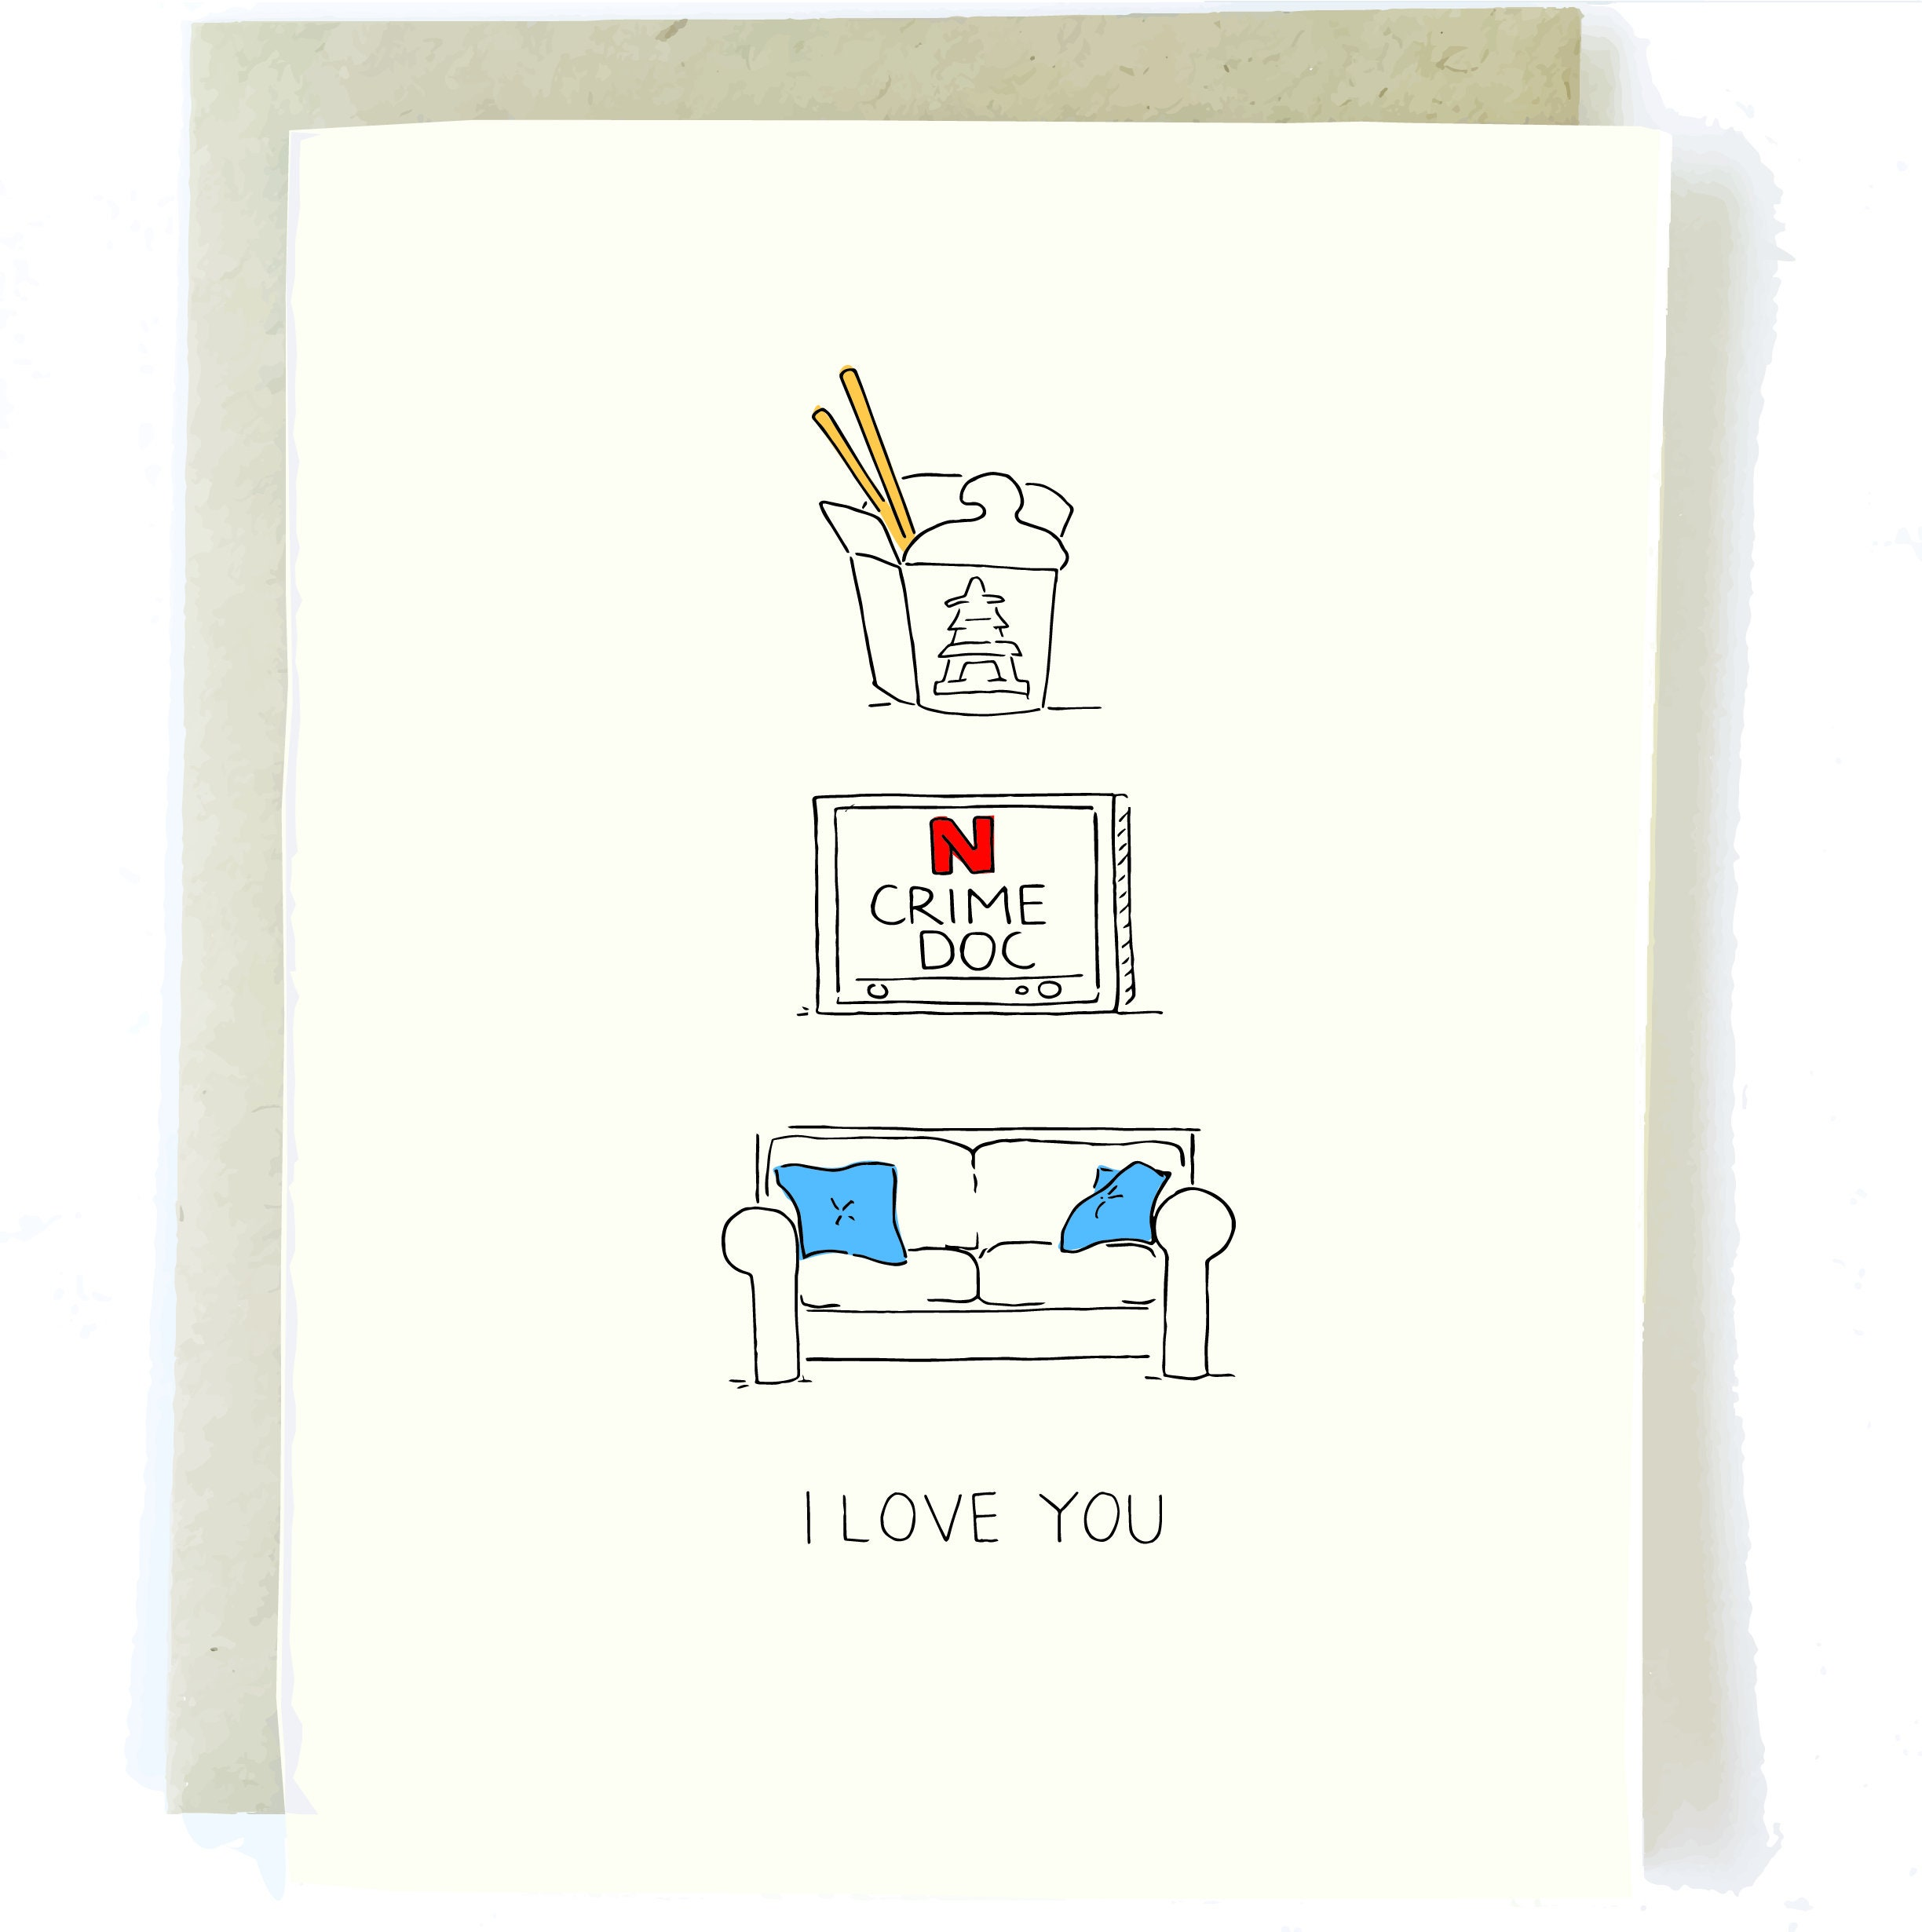 Reasons I Love You | Funny Love Card, Best Friend Card, Boyfriend Card,  Boyfriend Birthday Card, Take Out Card, Card for Him,